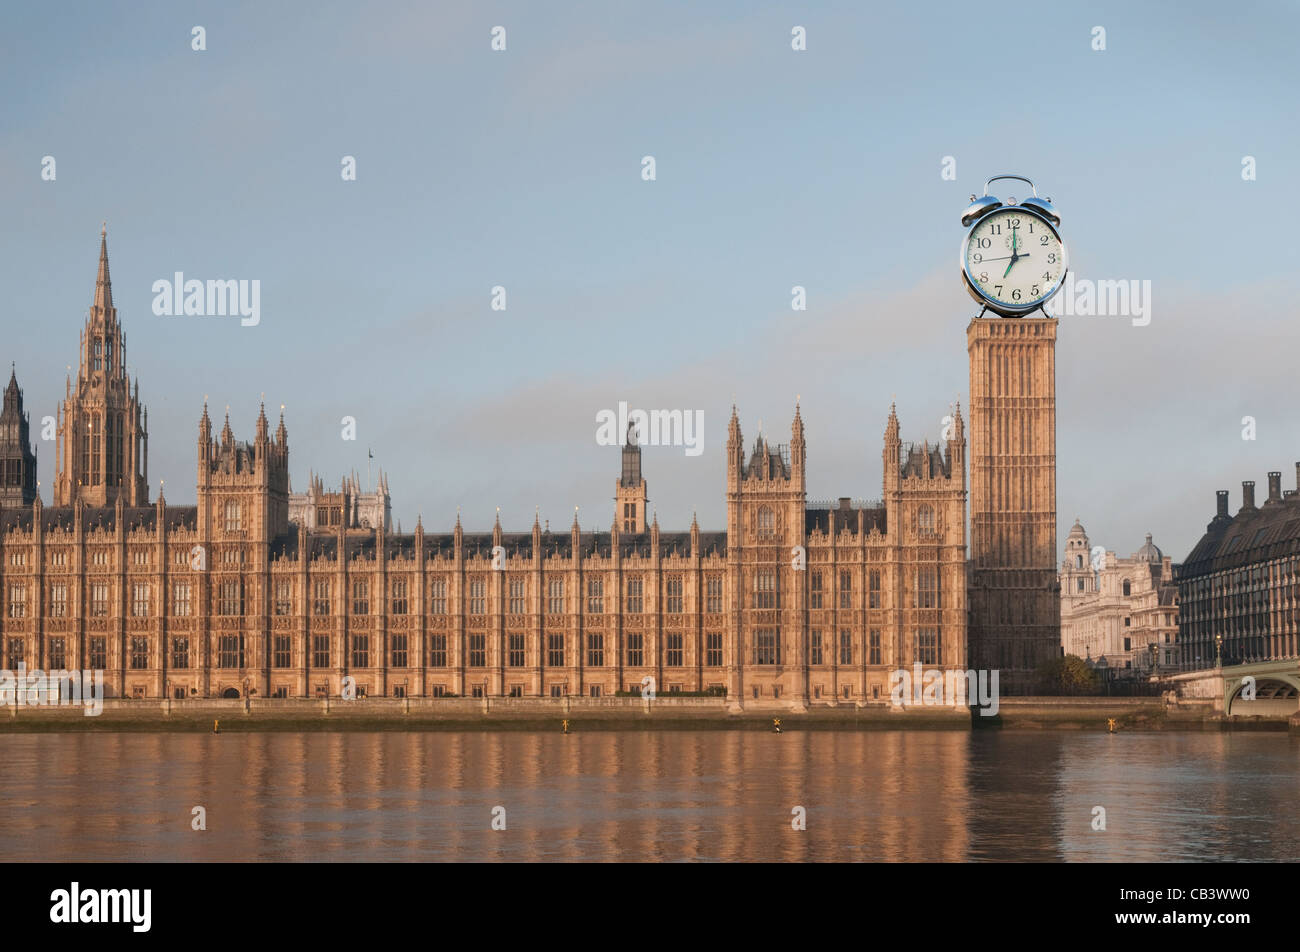 The Houses of Parliament in the United Kingdom, with an alarm clock instead of Big Ben - Stock Image